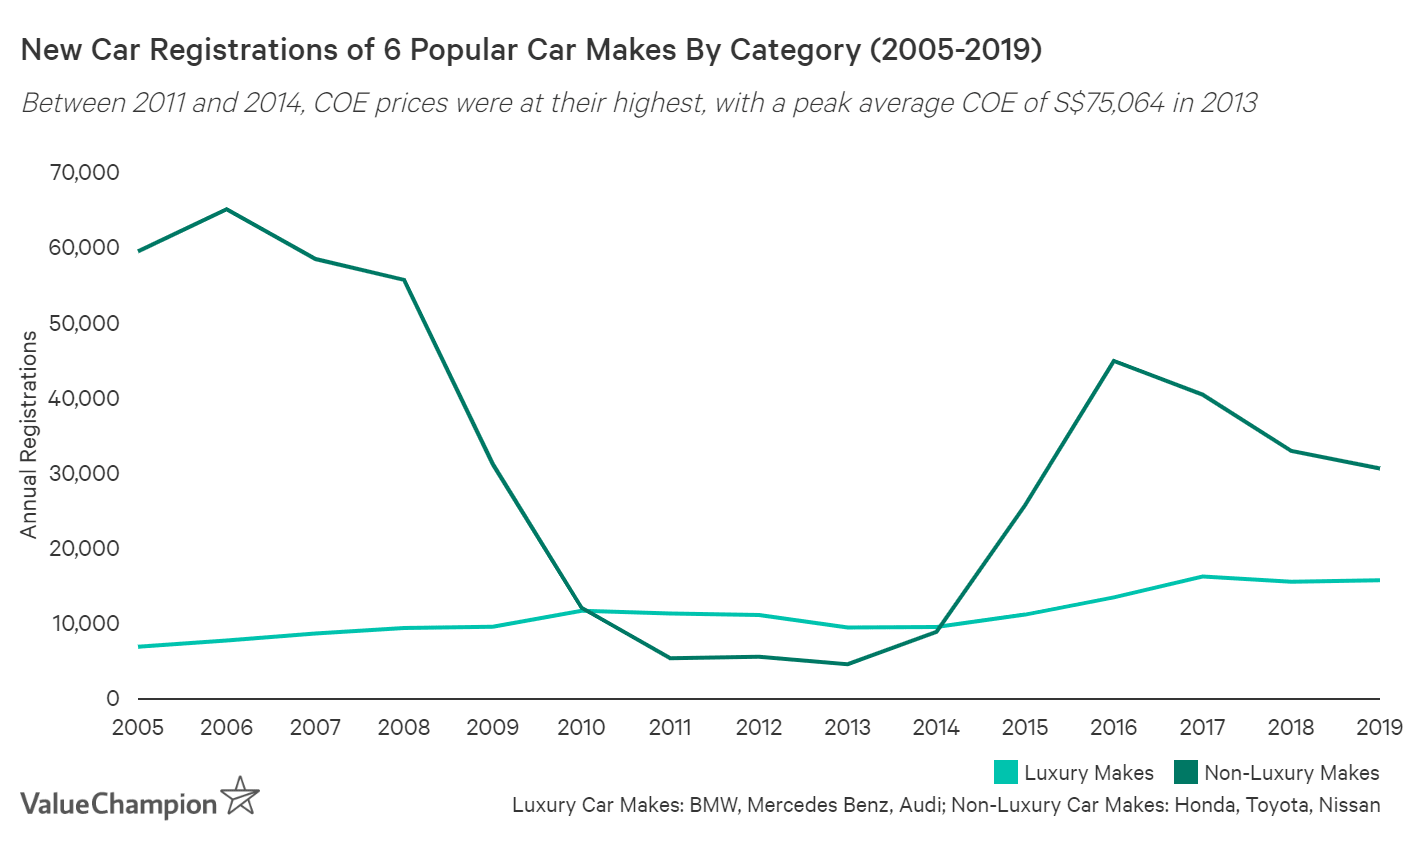 This graph shows how the 3 most popular luxury car makes were unaffected by COE prices between 2005 and 2019